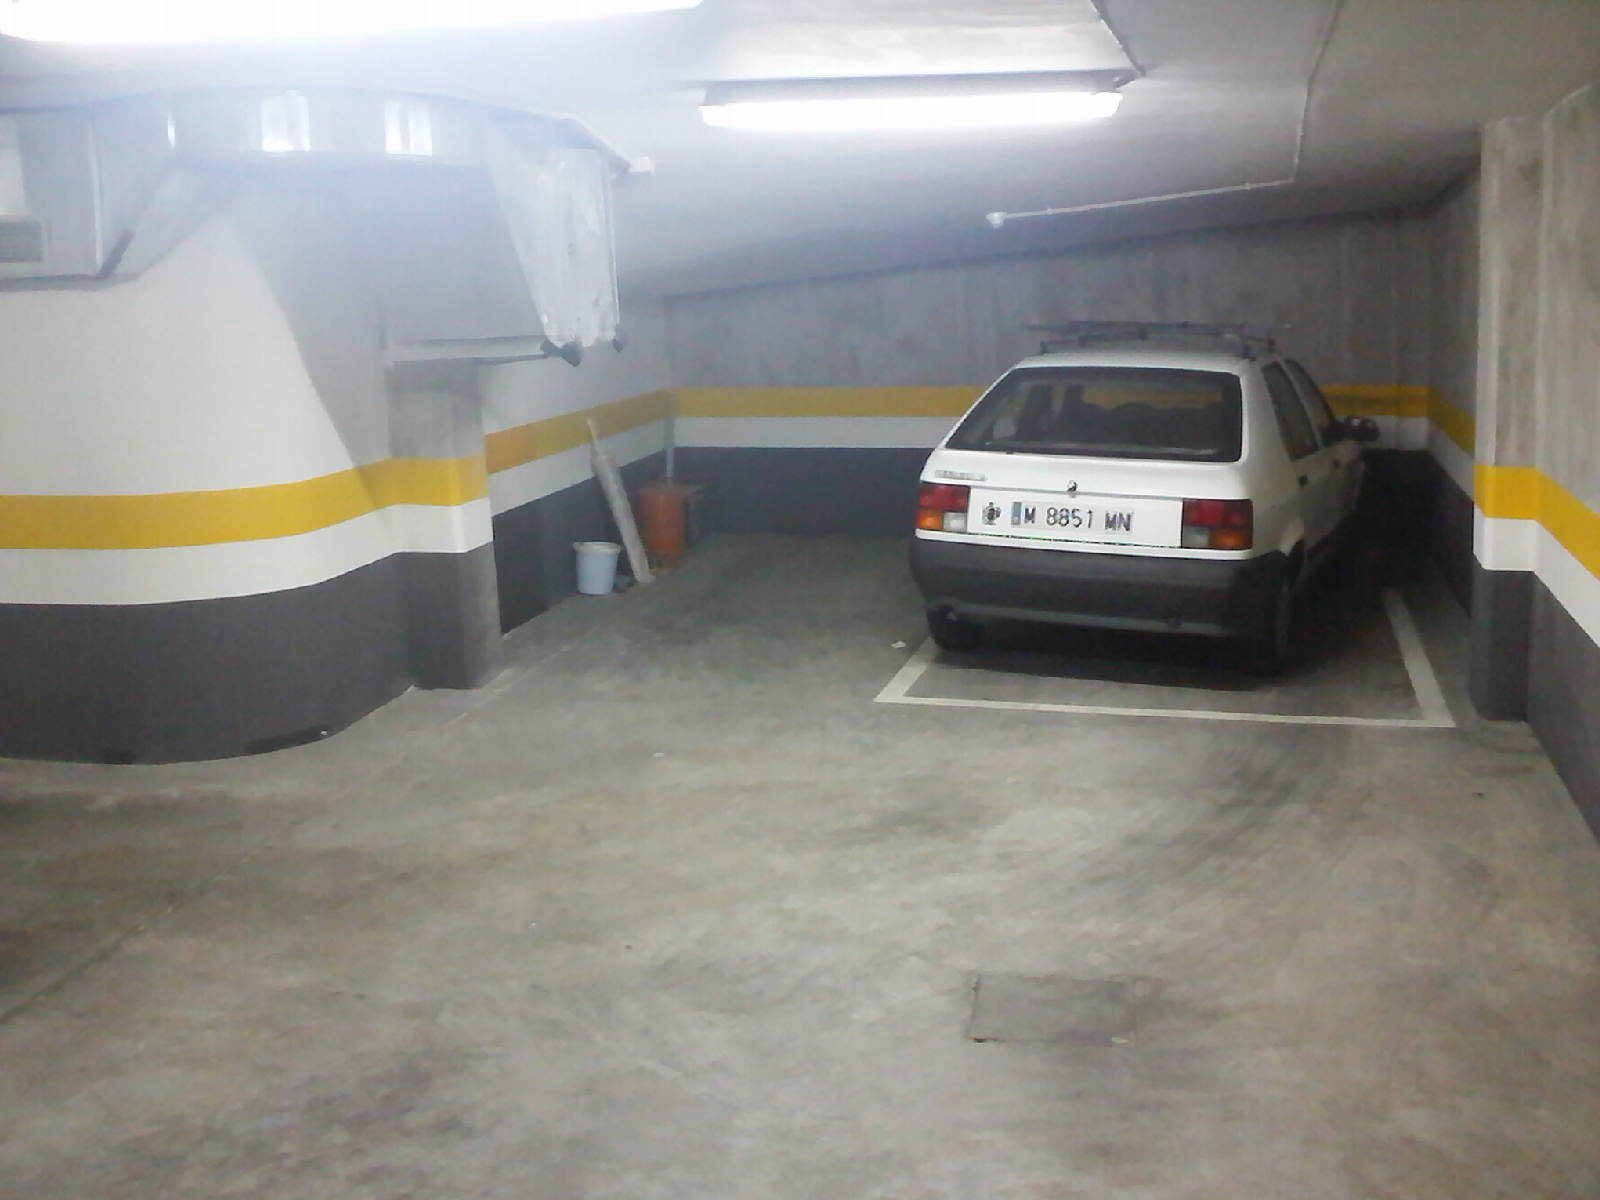 Vente garage parking santiago de compostela la coru a for Vente garage parking angers